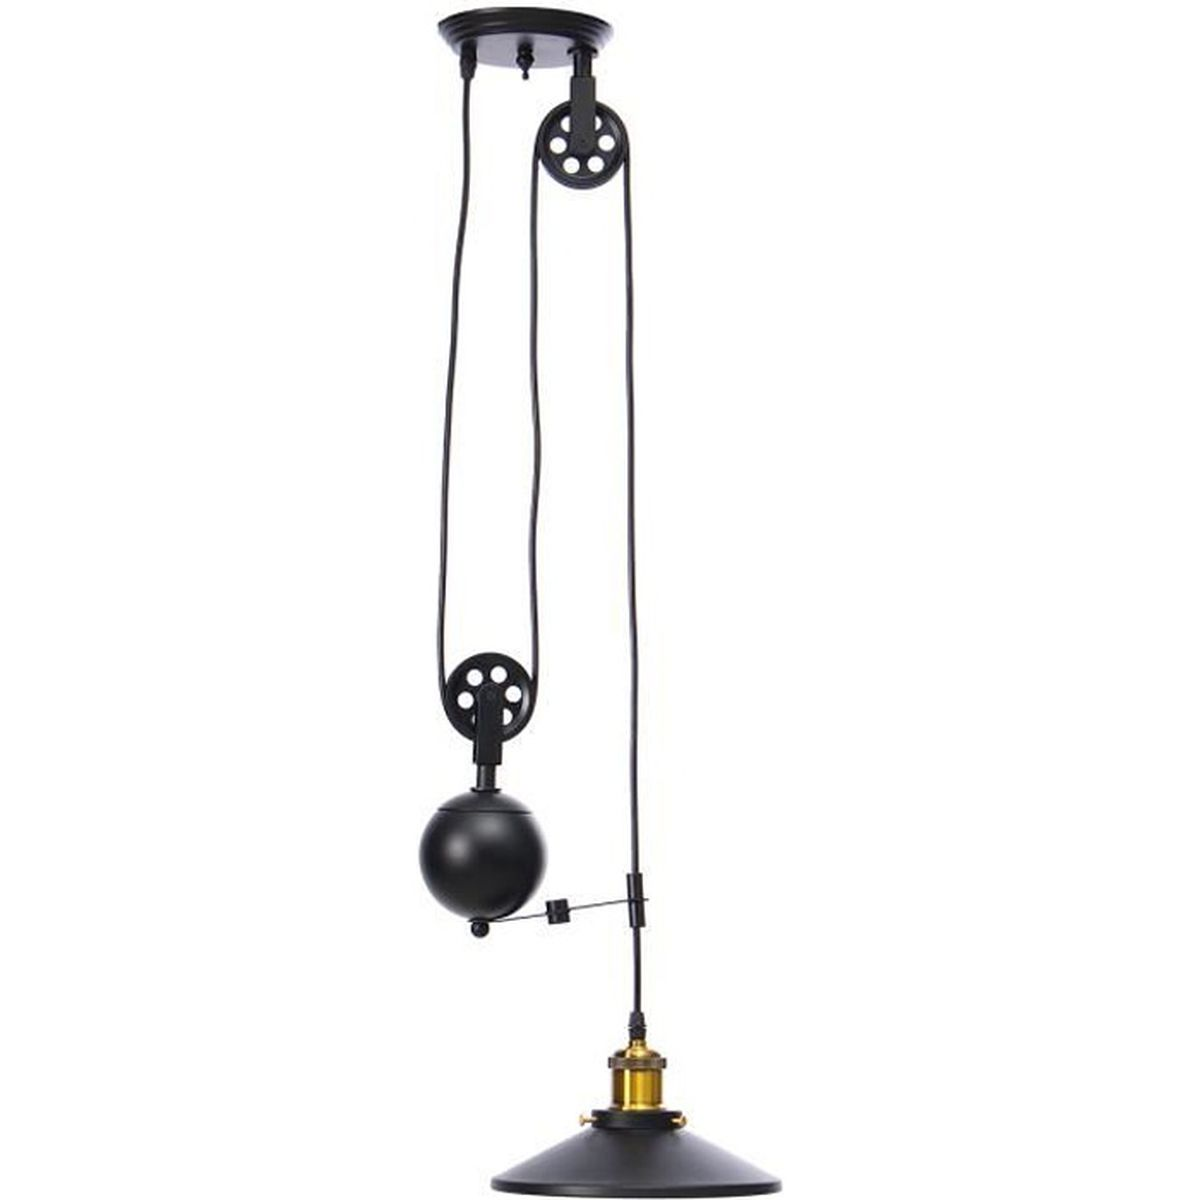 lampe suspension reglable achat vente lampe suspension. Black Bedroom Furniture Sets. Home Design Ideas